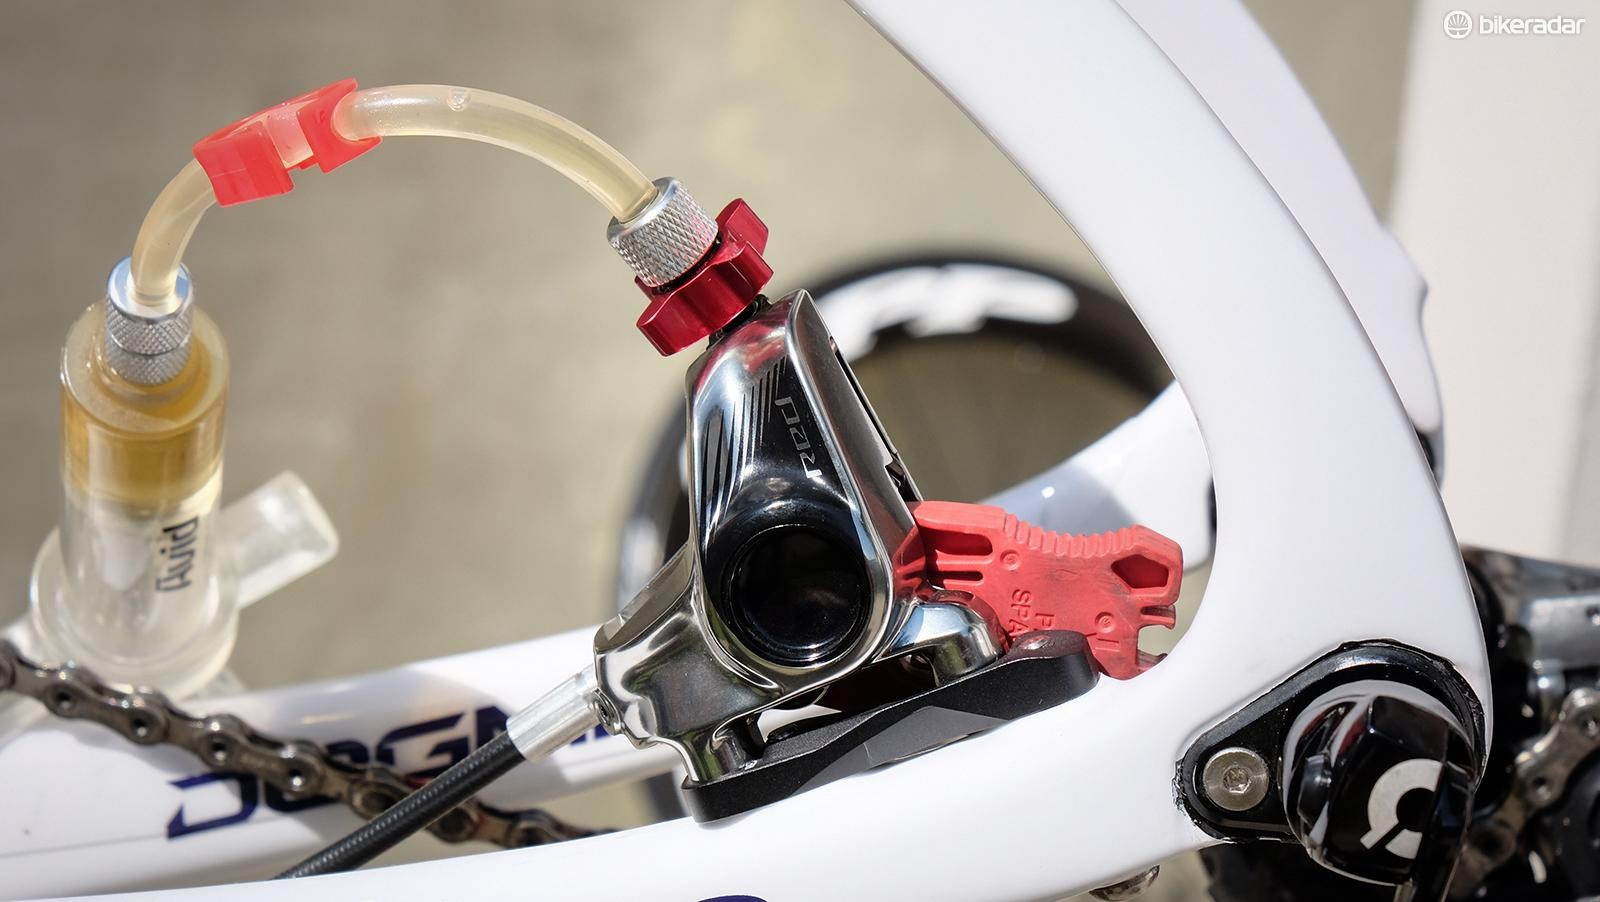 SRAM's Bleeding Edge connects make it much easier — and far less messy — to bleed hydraulic disc brakes